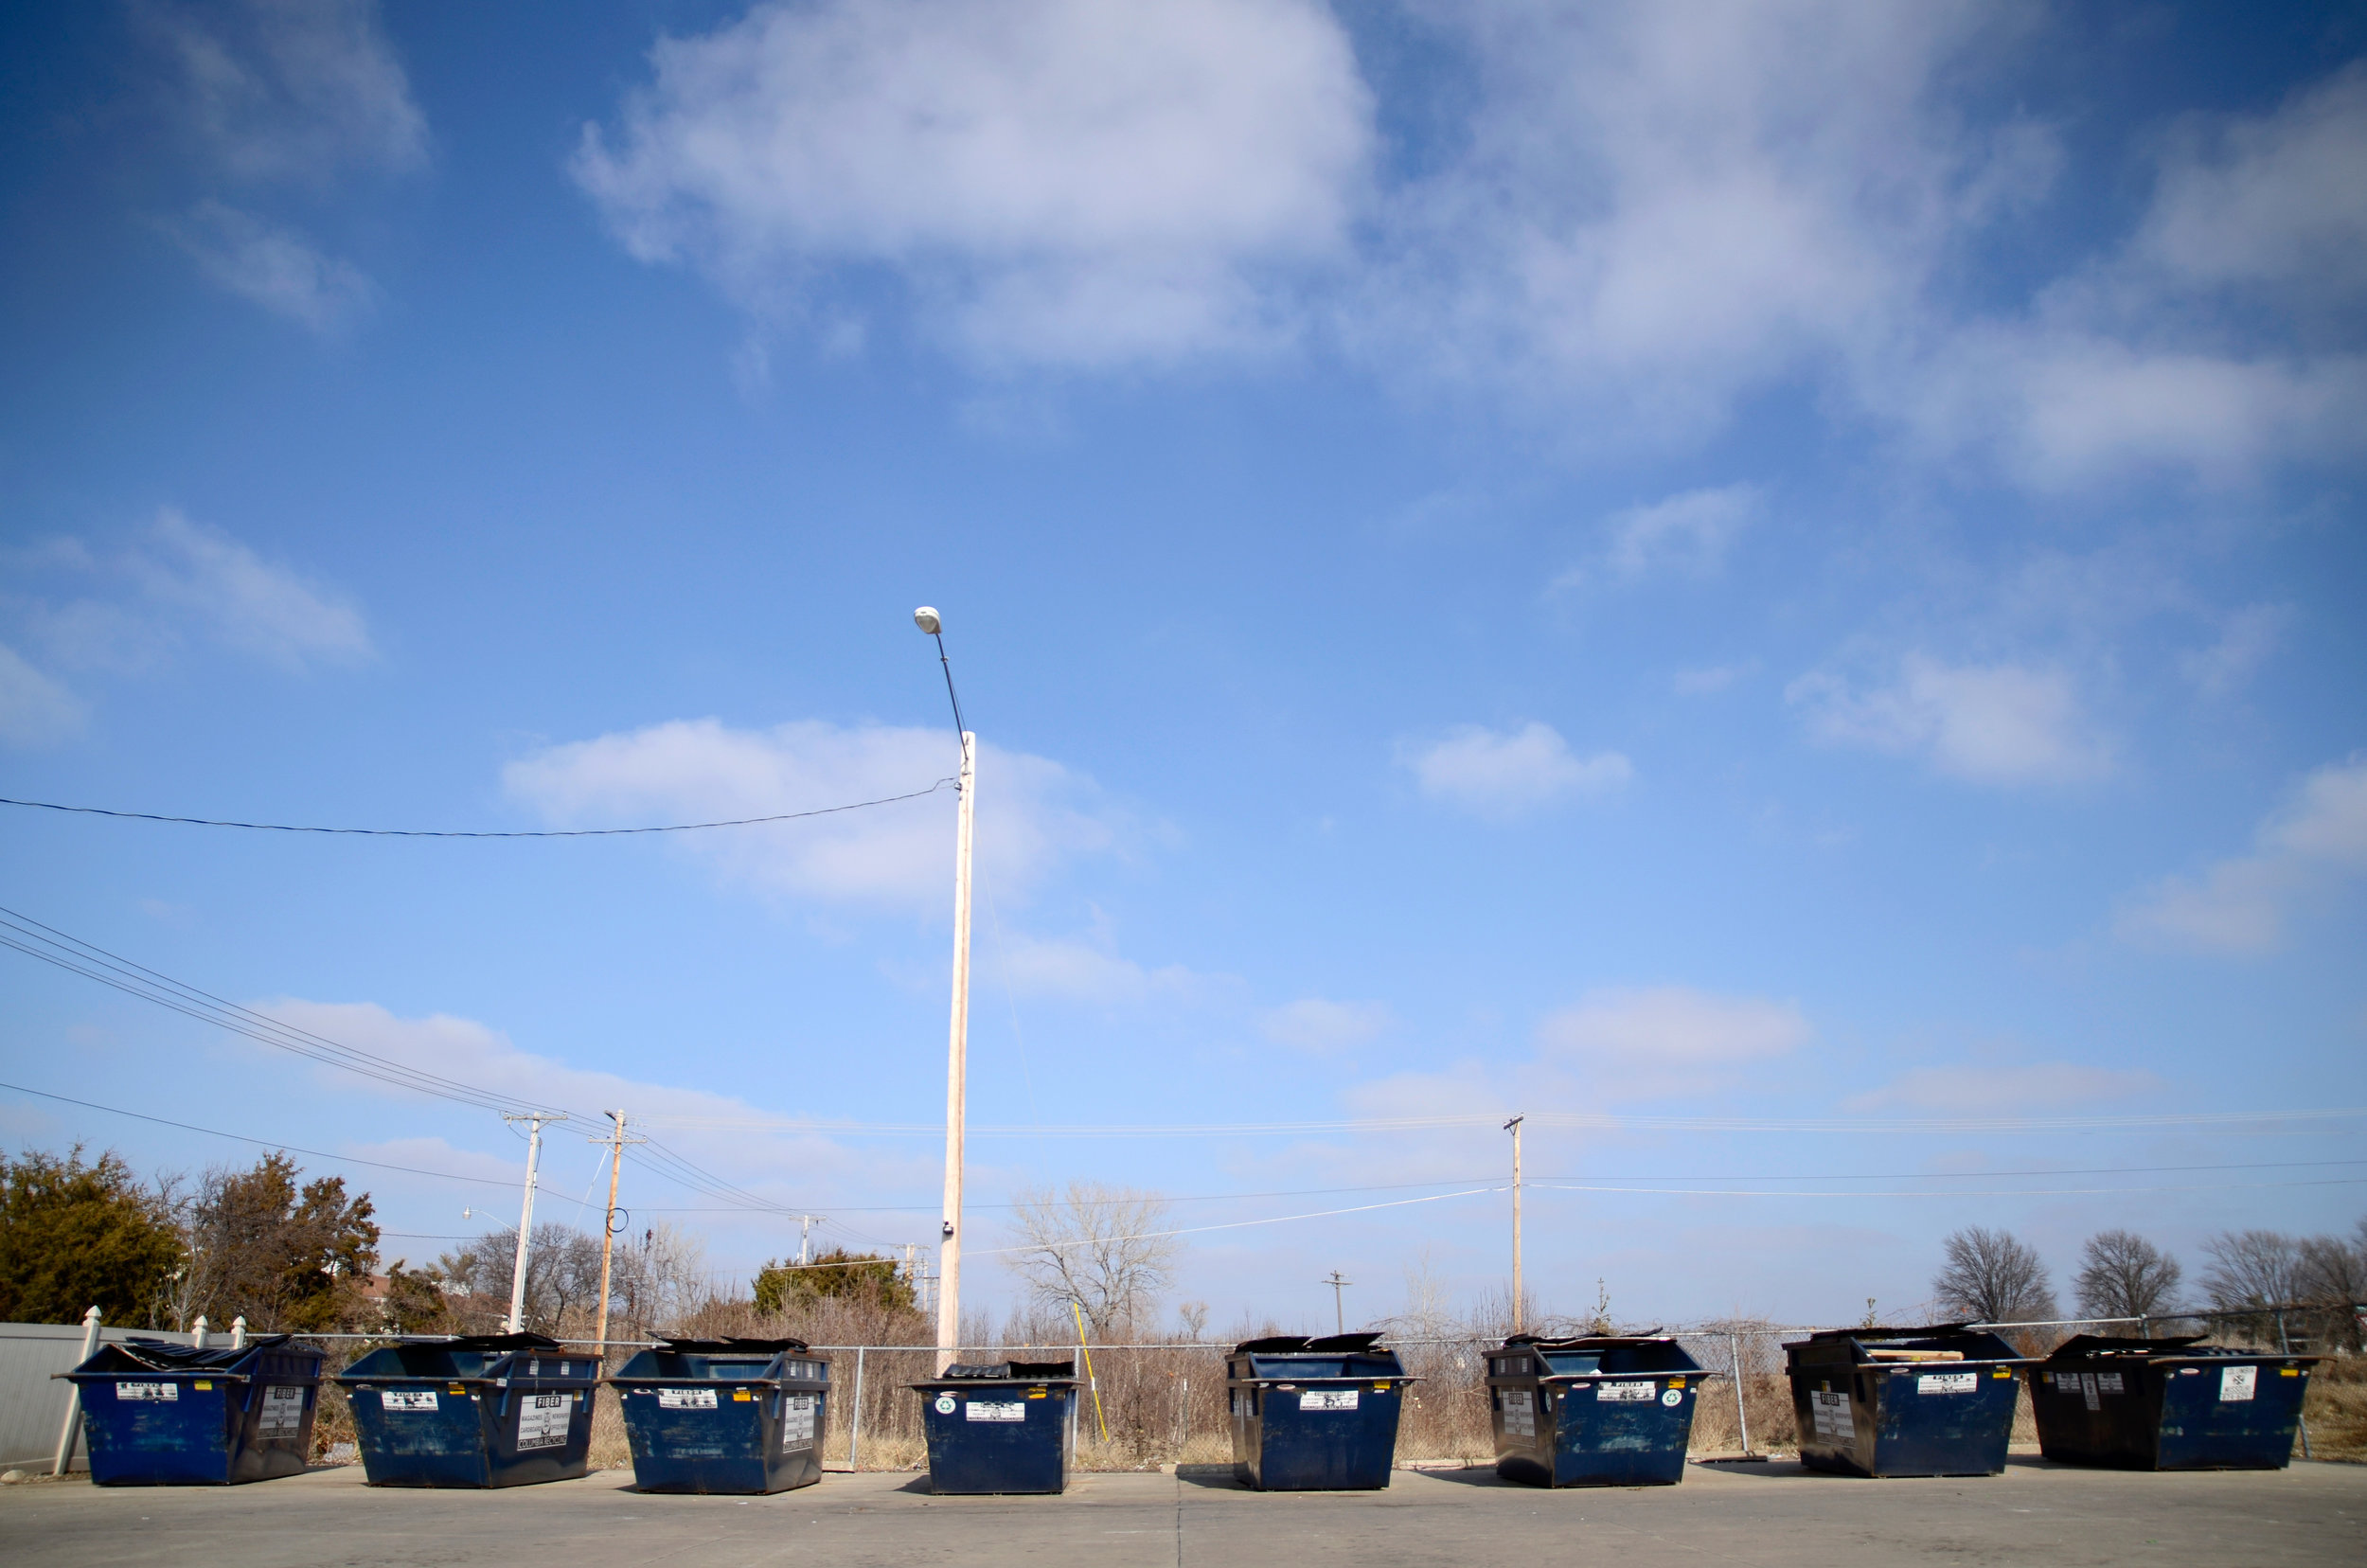 Eight recycle bins line the edge of the recycling drop-off location on State Farm Parkway in Columbia, MO, on Friday, Jan. 23, 2015. These bins accept the same recyclable items that can be placed curbside, but plastic bags are not allowed in these containers.